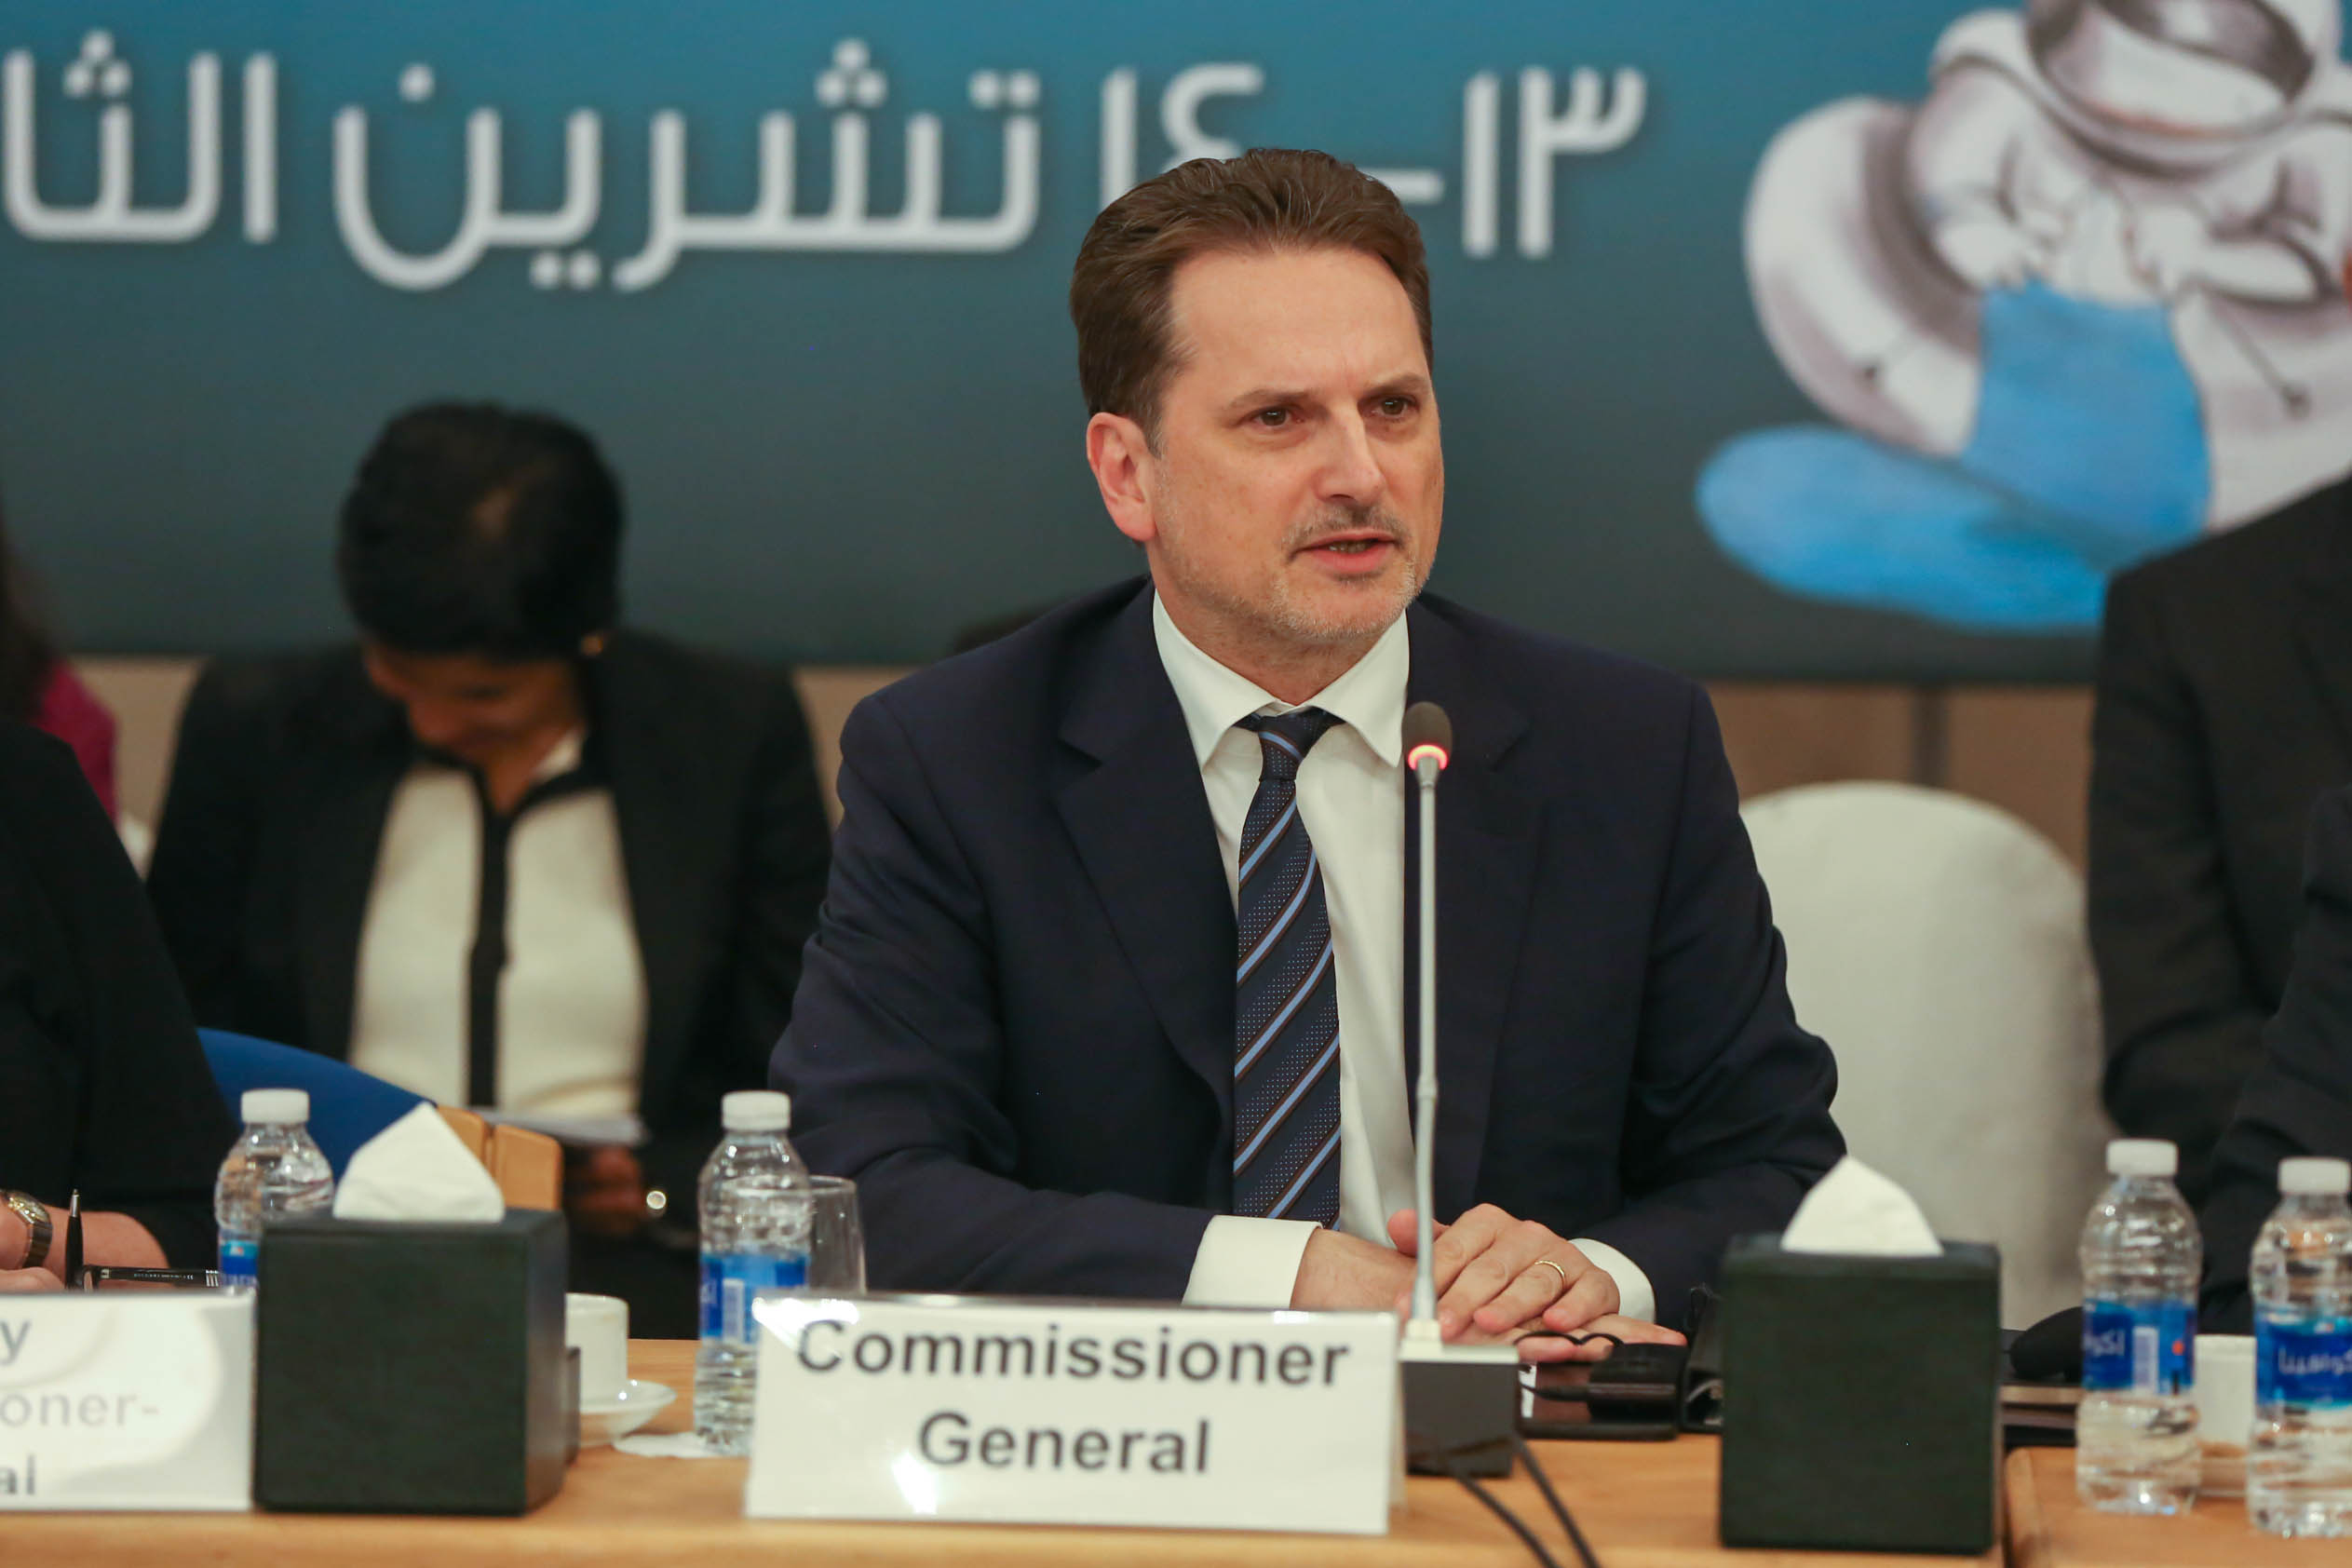 UNRWA Commissioner-General Pierre Krähenbühl addresses the Agency's Advisory Commission during a meeting at the Dead Sea in Jordan on 13 November 2017. © 2017 UNRWA Photo by Marwan Baghdadi